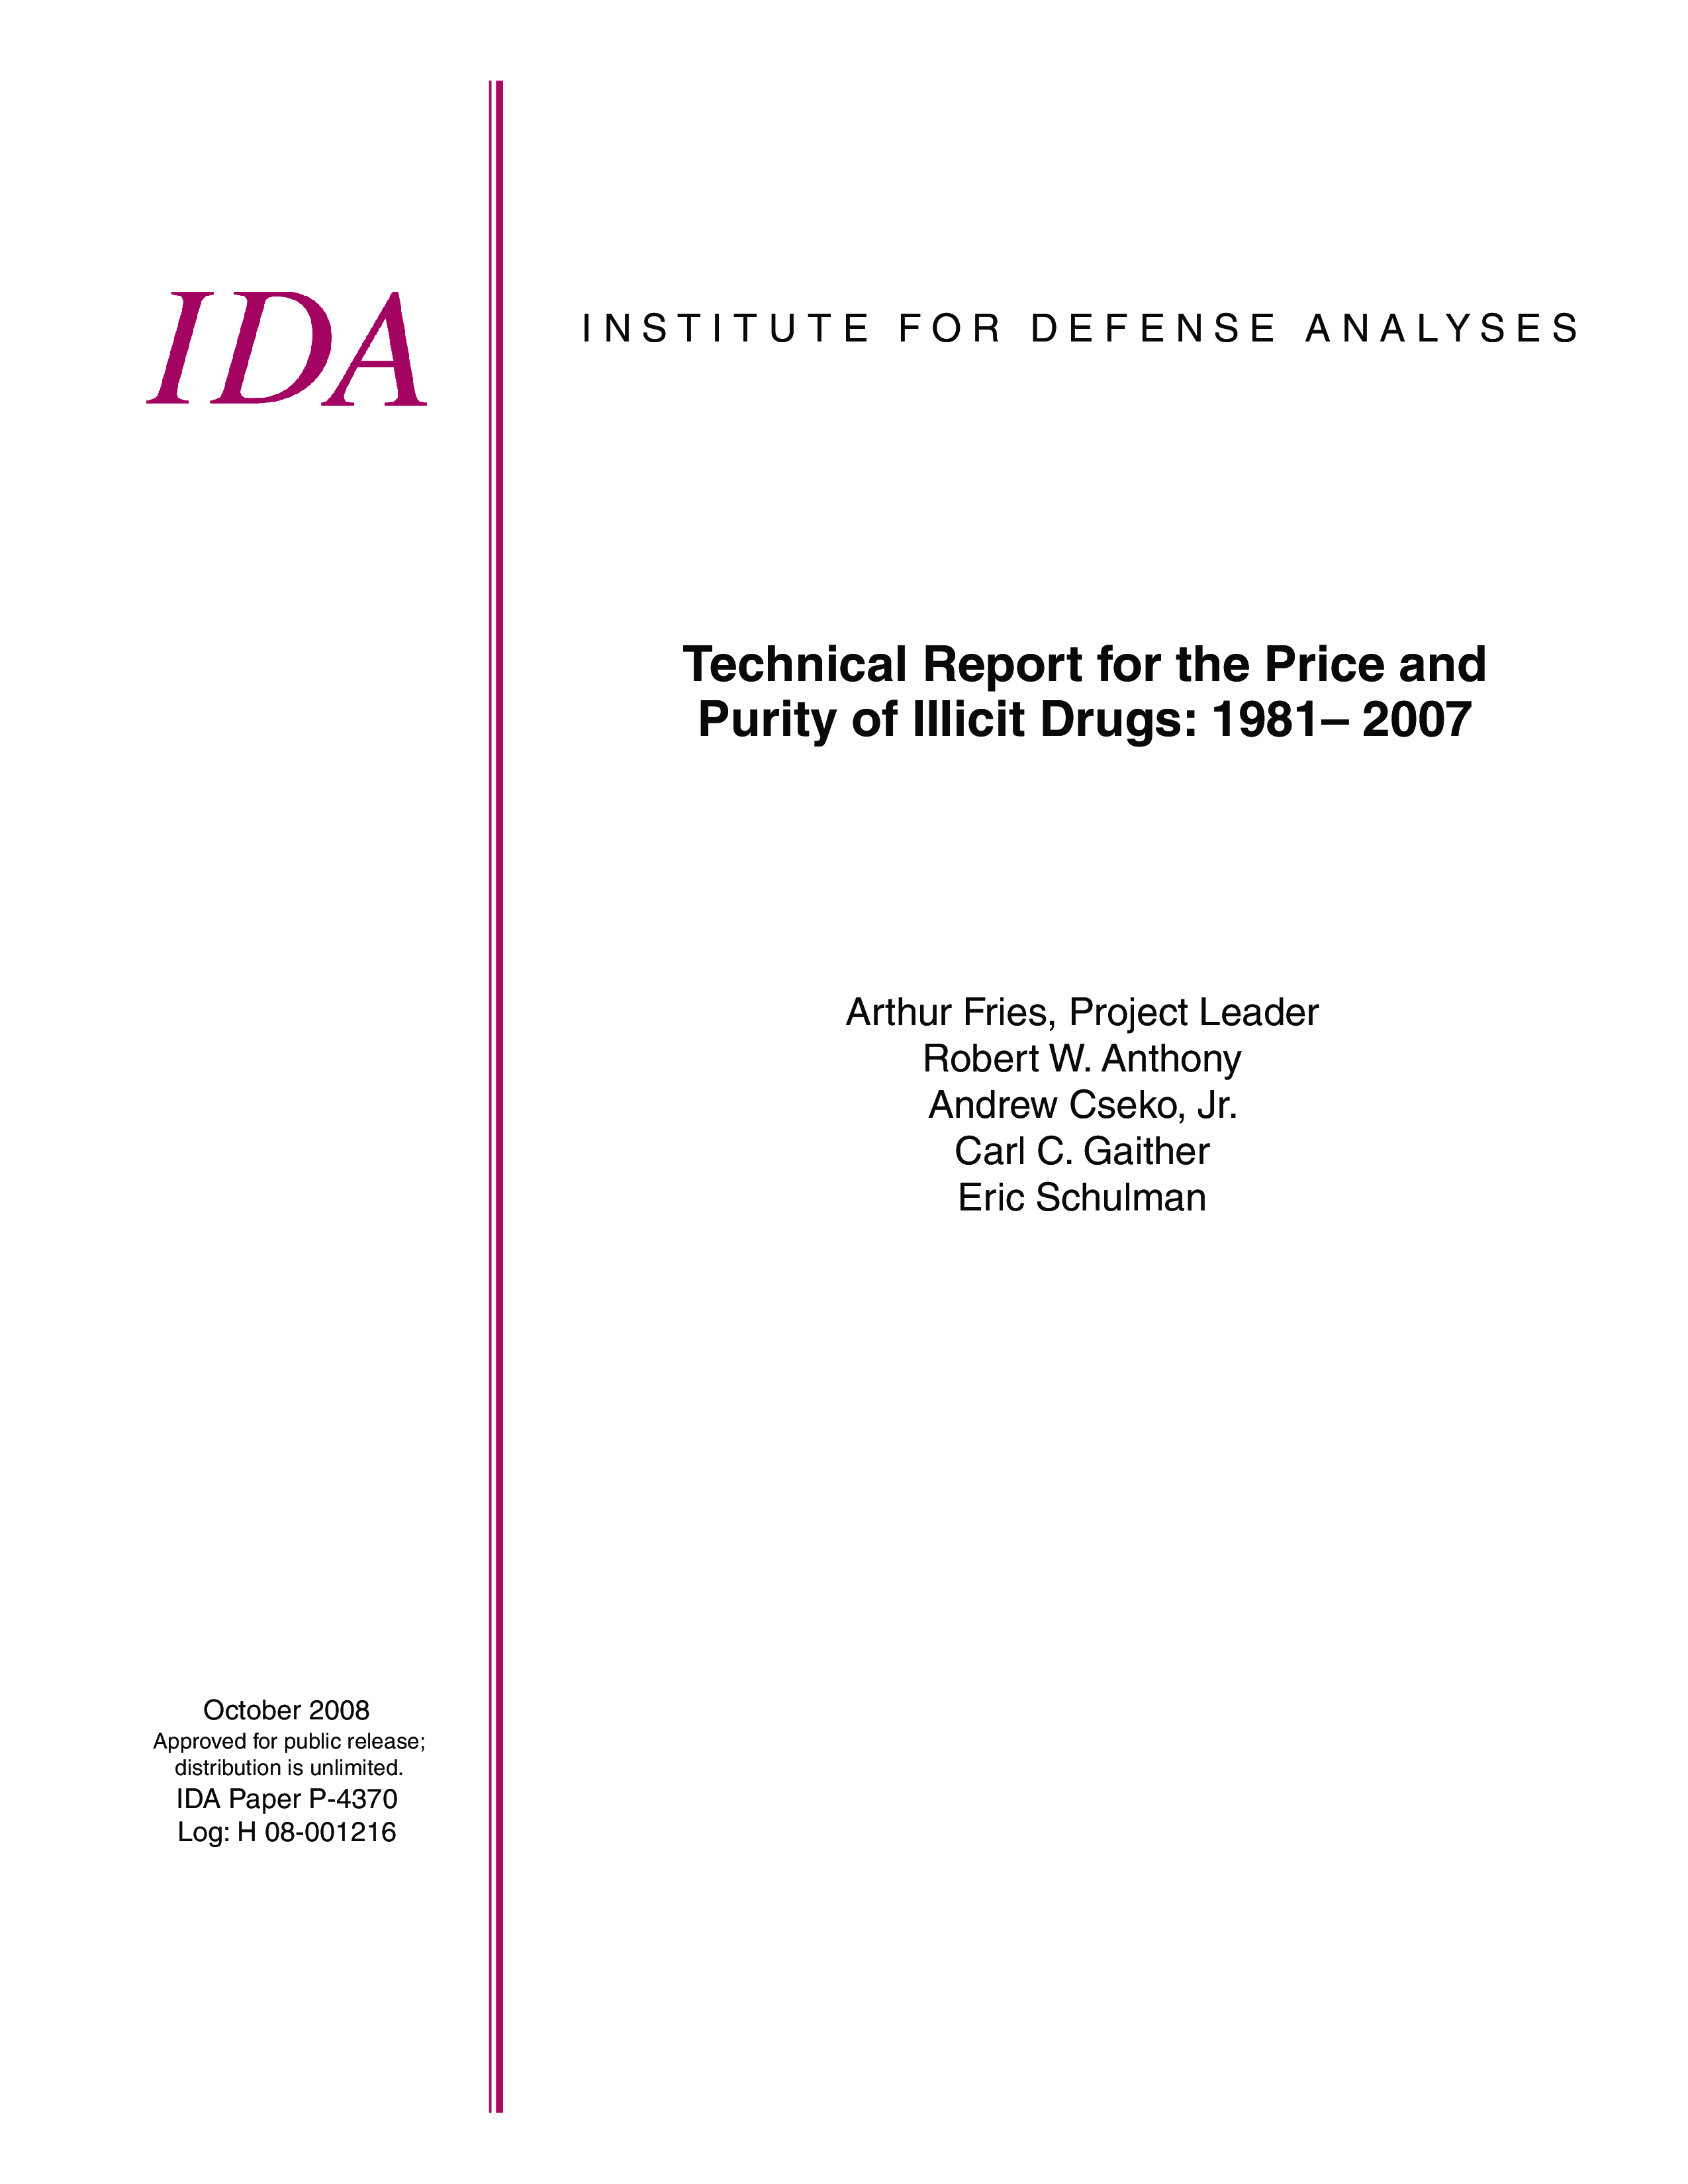 Technical Report for the Price and Purity of Illicit Drugs: 1981 – 2007